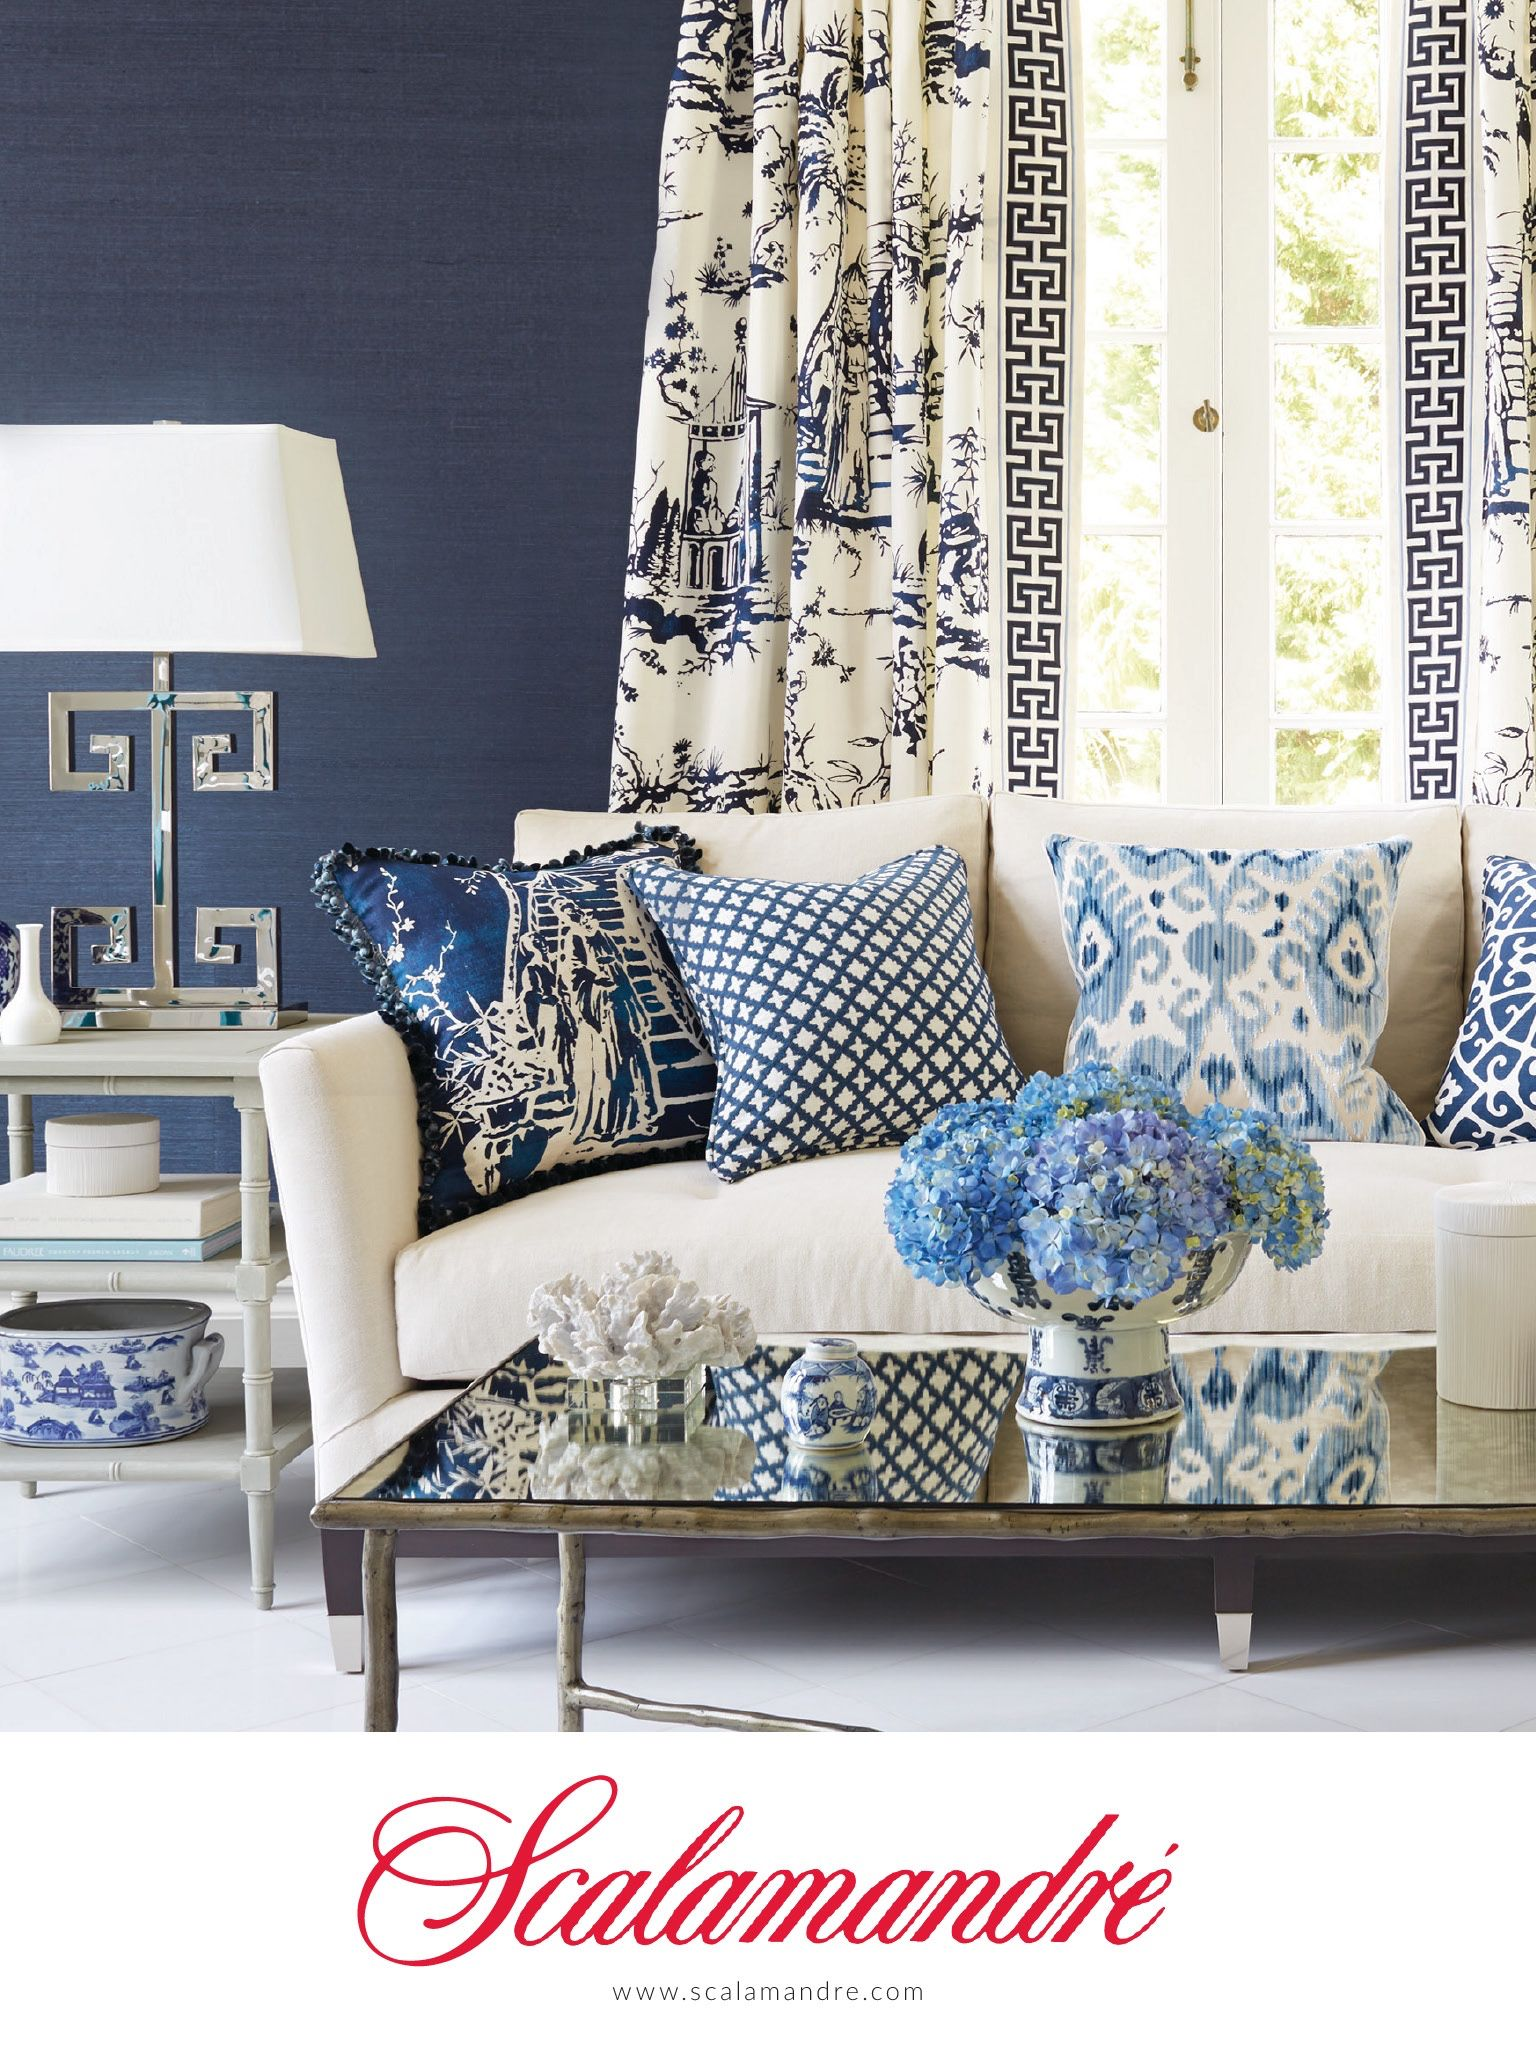 I saw this in the October 2015 issue of @HouseBeautiful.   http://bit.ly/1ySrLfl